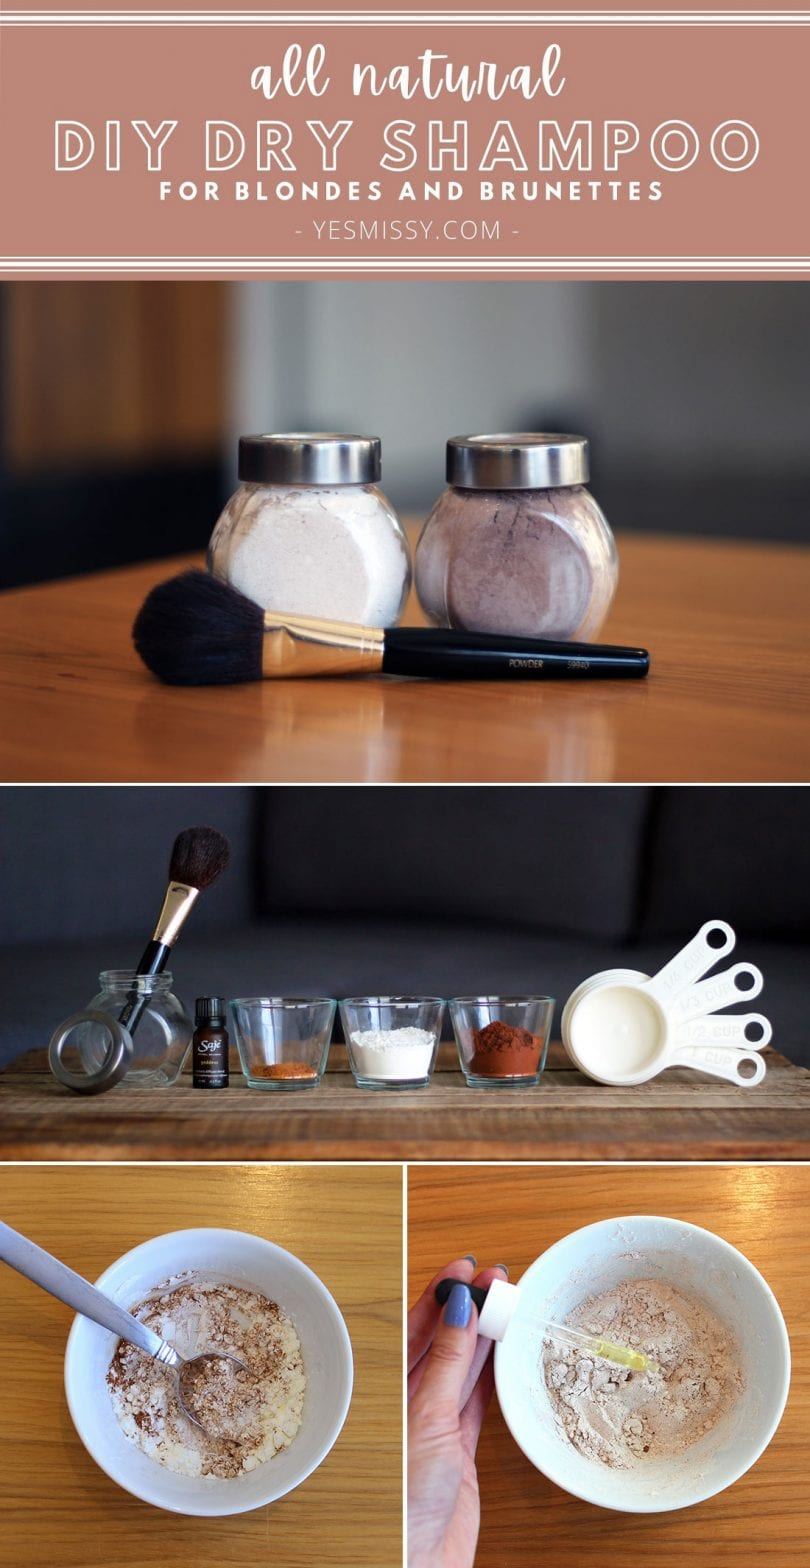 Make this all natural DIY dry shampoo. 2 forumlas for blondes and brunettes.